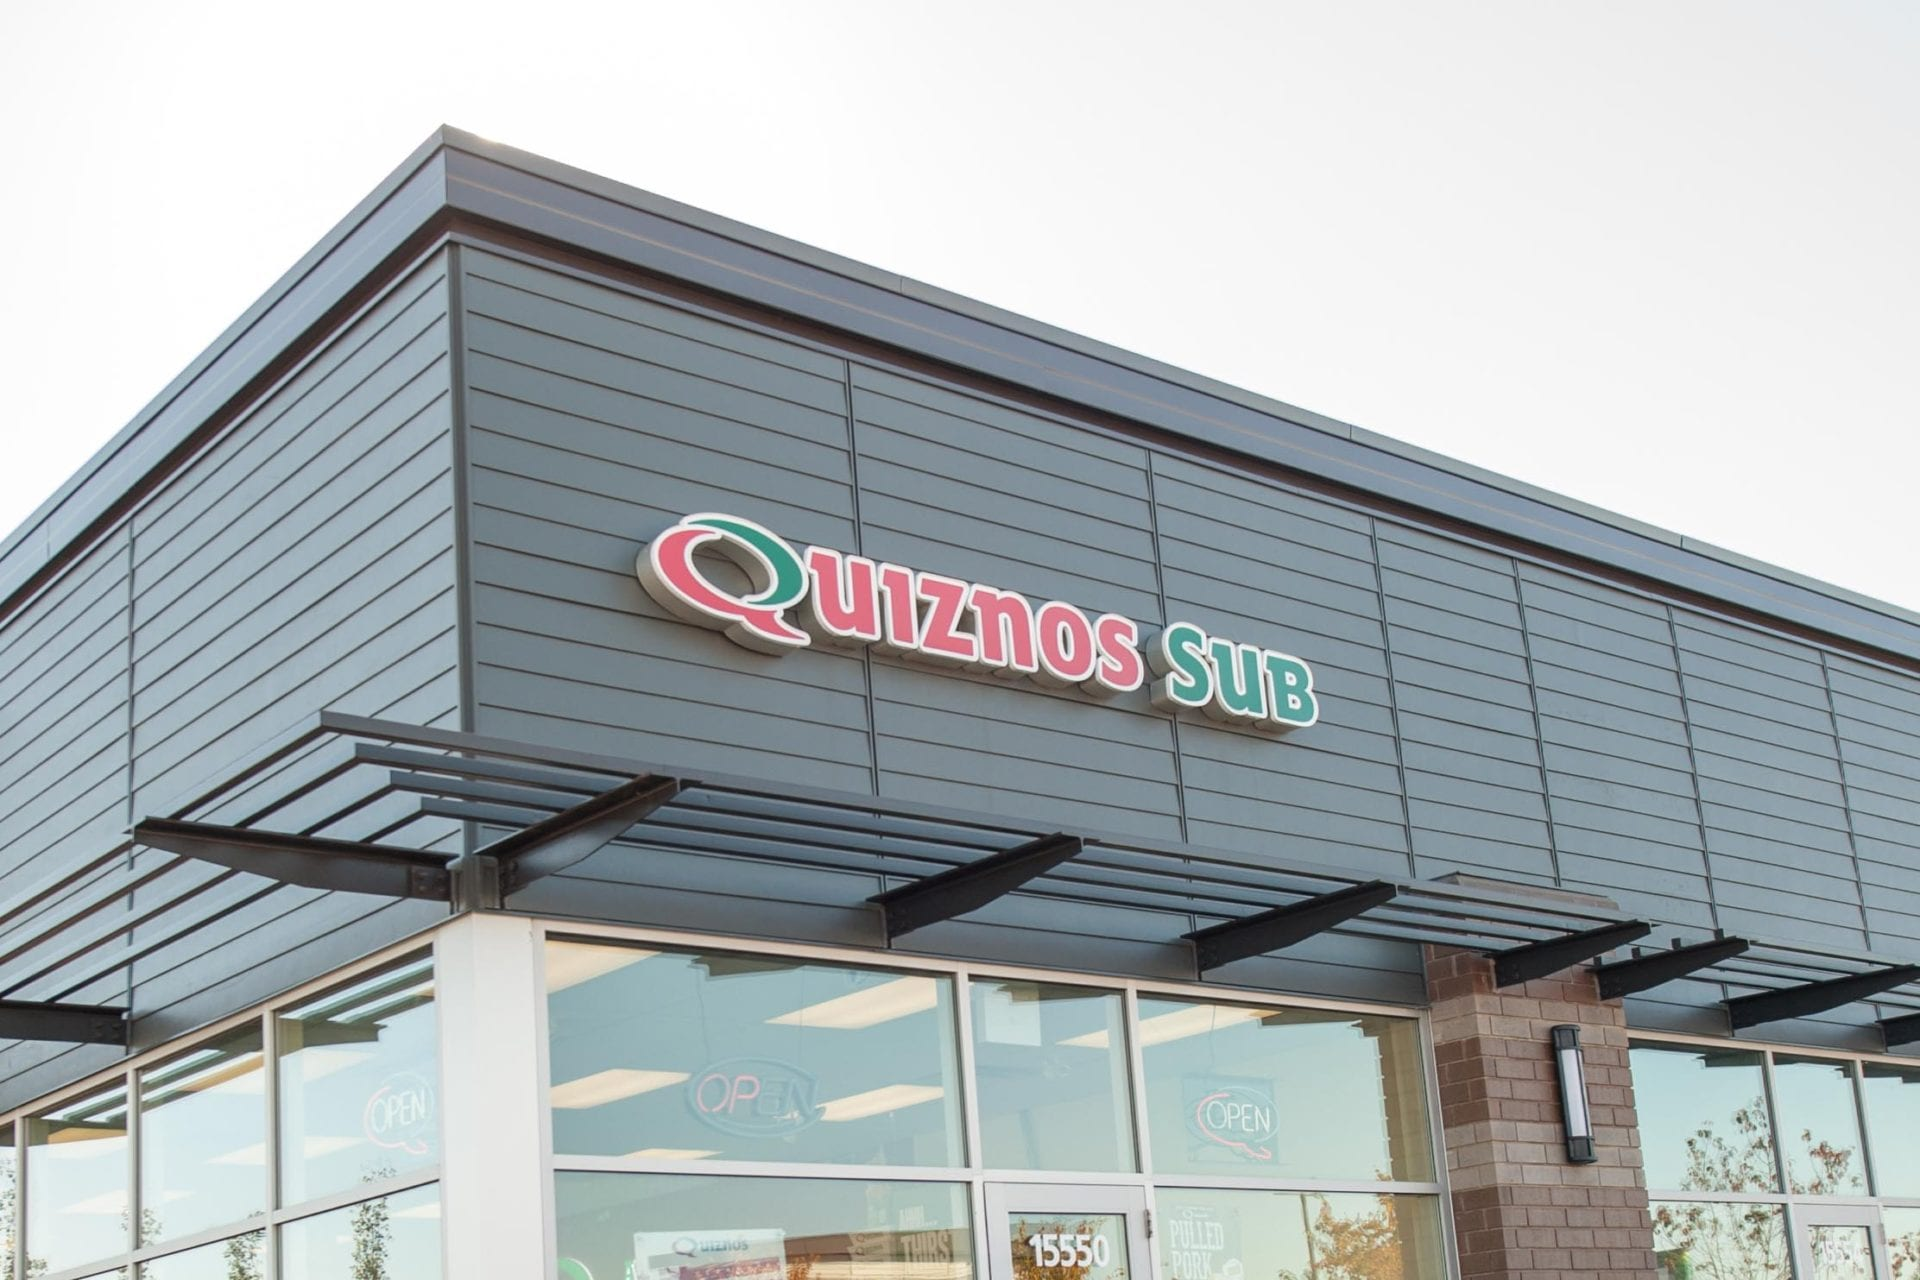 Quiznos is a famous fast food restaurant chain in the US and across the world with over 4, stores. Although it is best known for its submarine sandwiches, it offers many other delicious food items including salads, soups and sides.